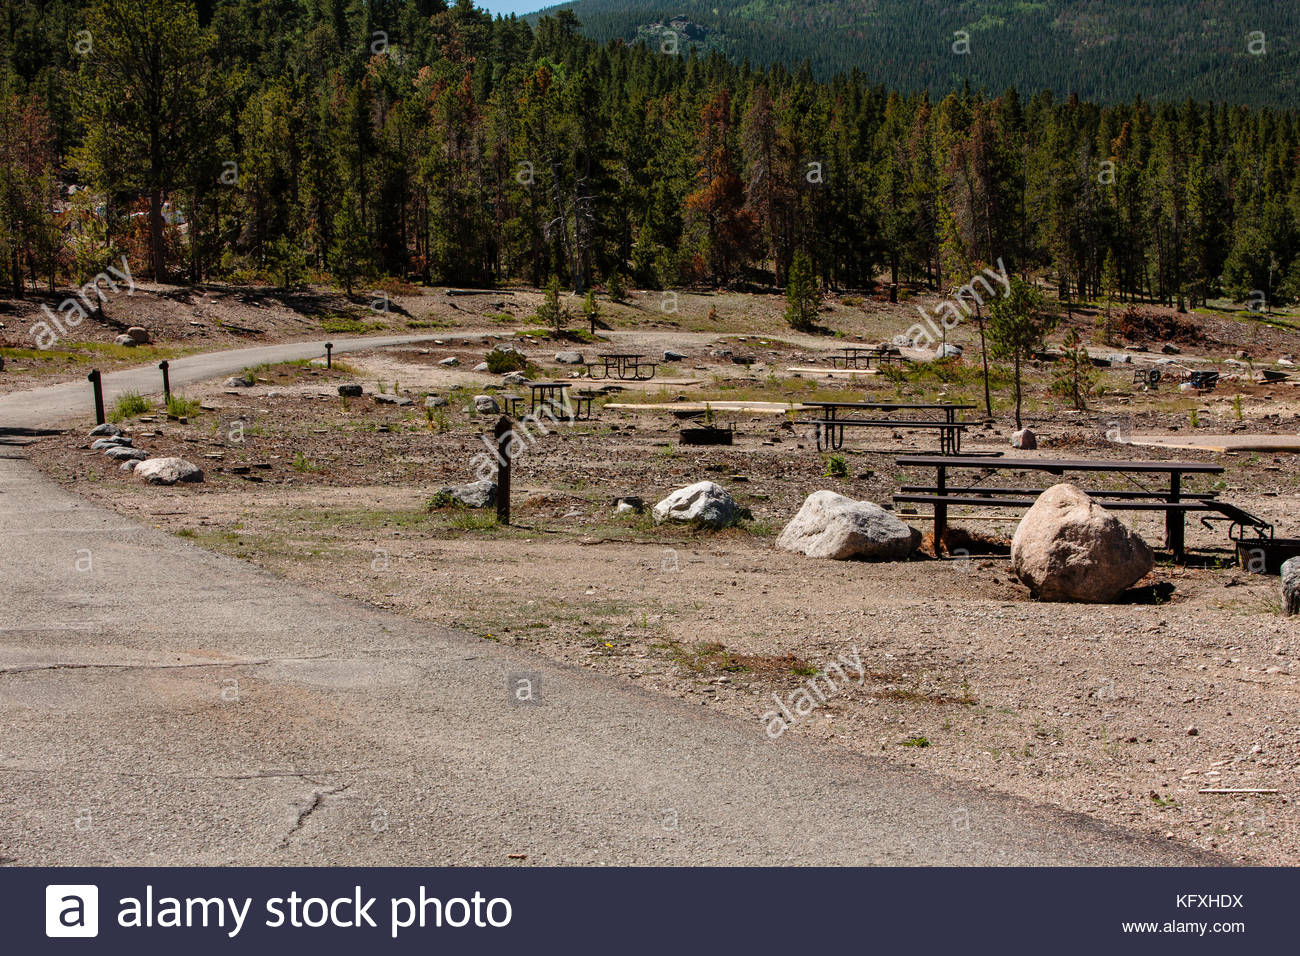 Rocky mountain national park campground stock photos for Rocky mountain state park cabins